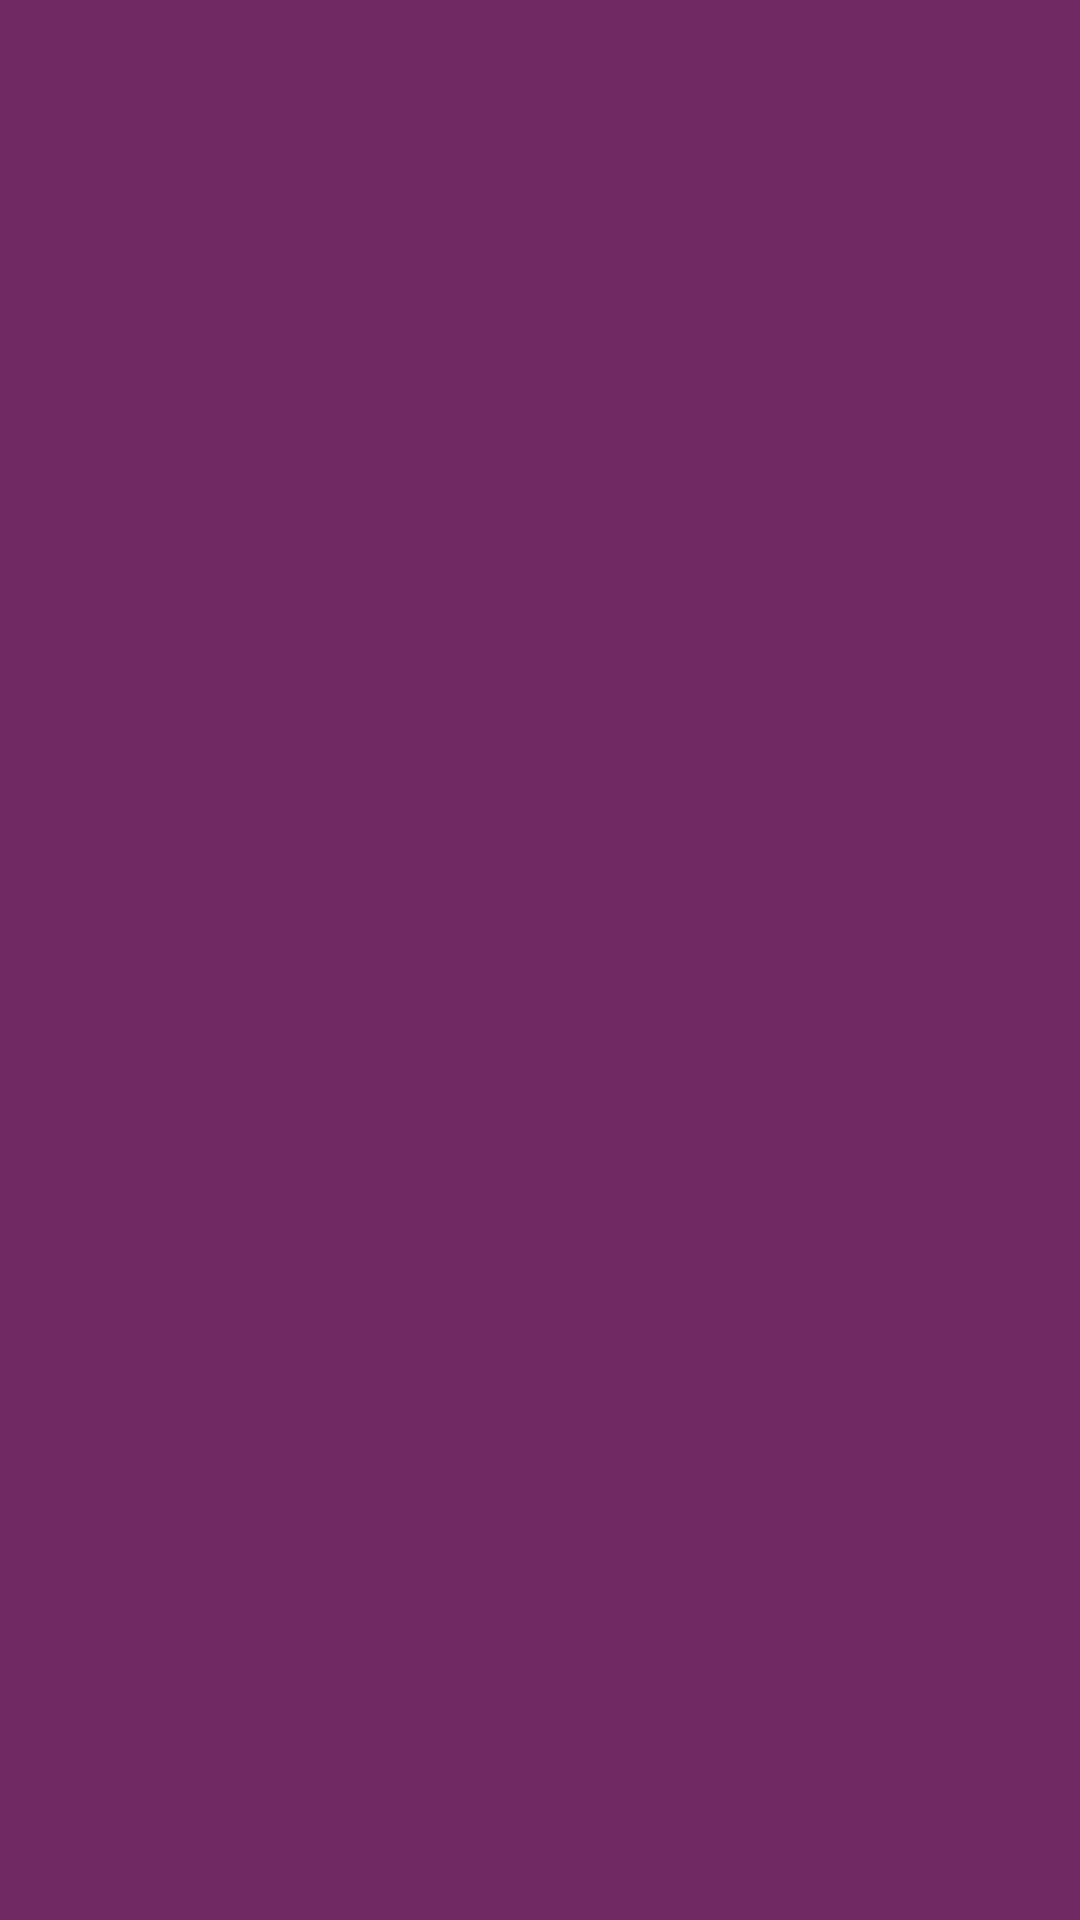 1080x1920 Byzantium Solid Color Background